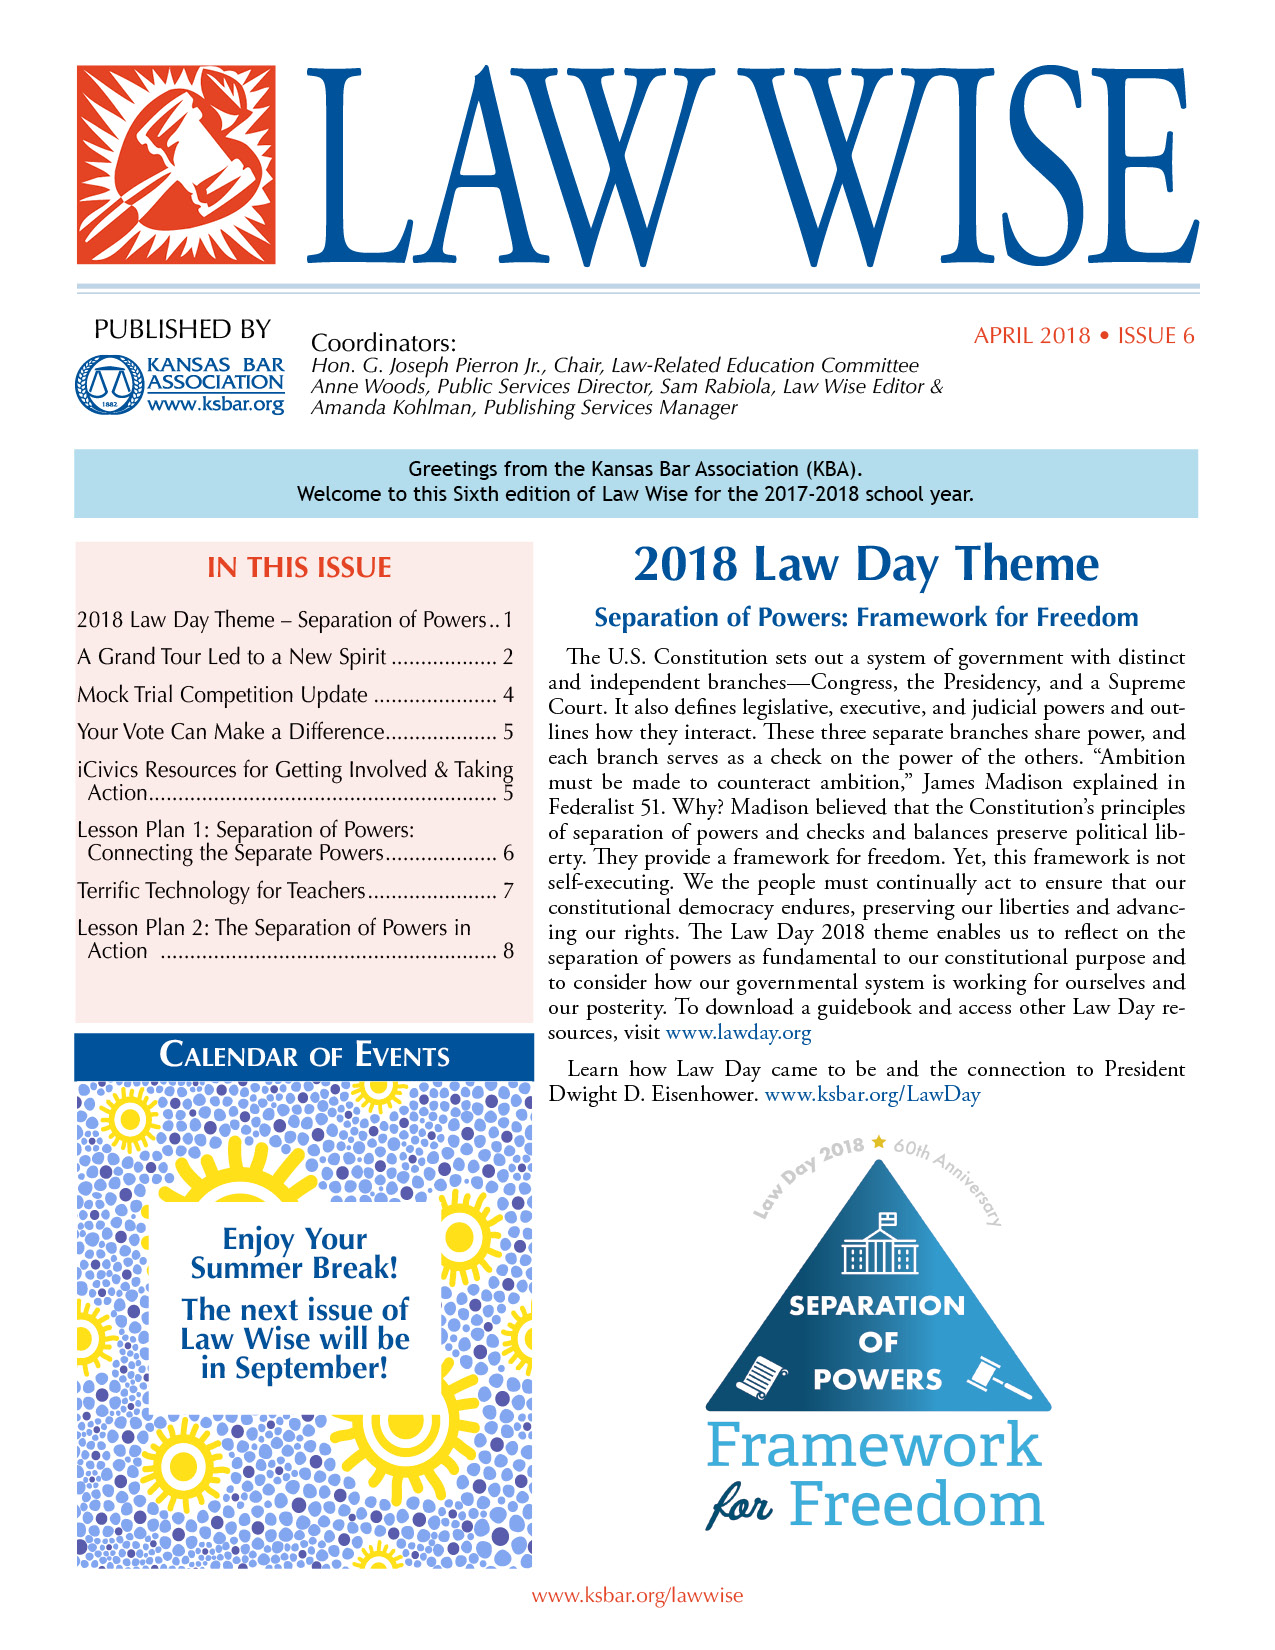 Law Wise Cover - Featuring Law Day